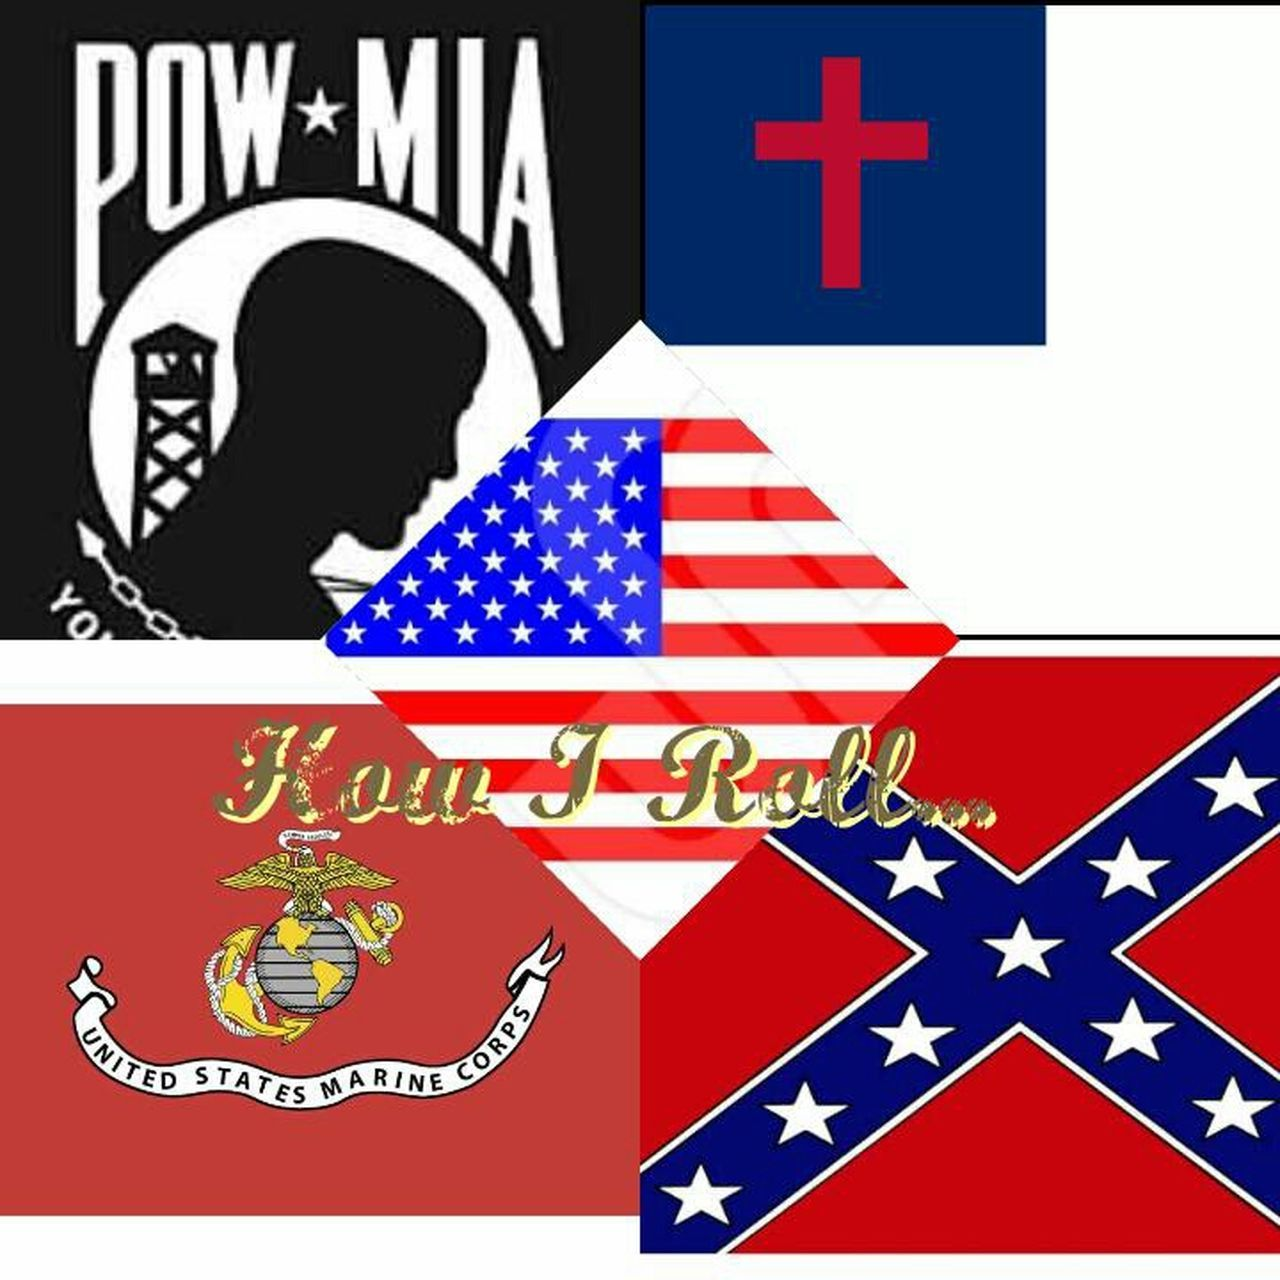 How I Roll.... POW MIA Christian American Confederate USMC